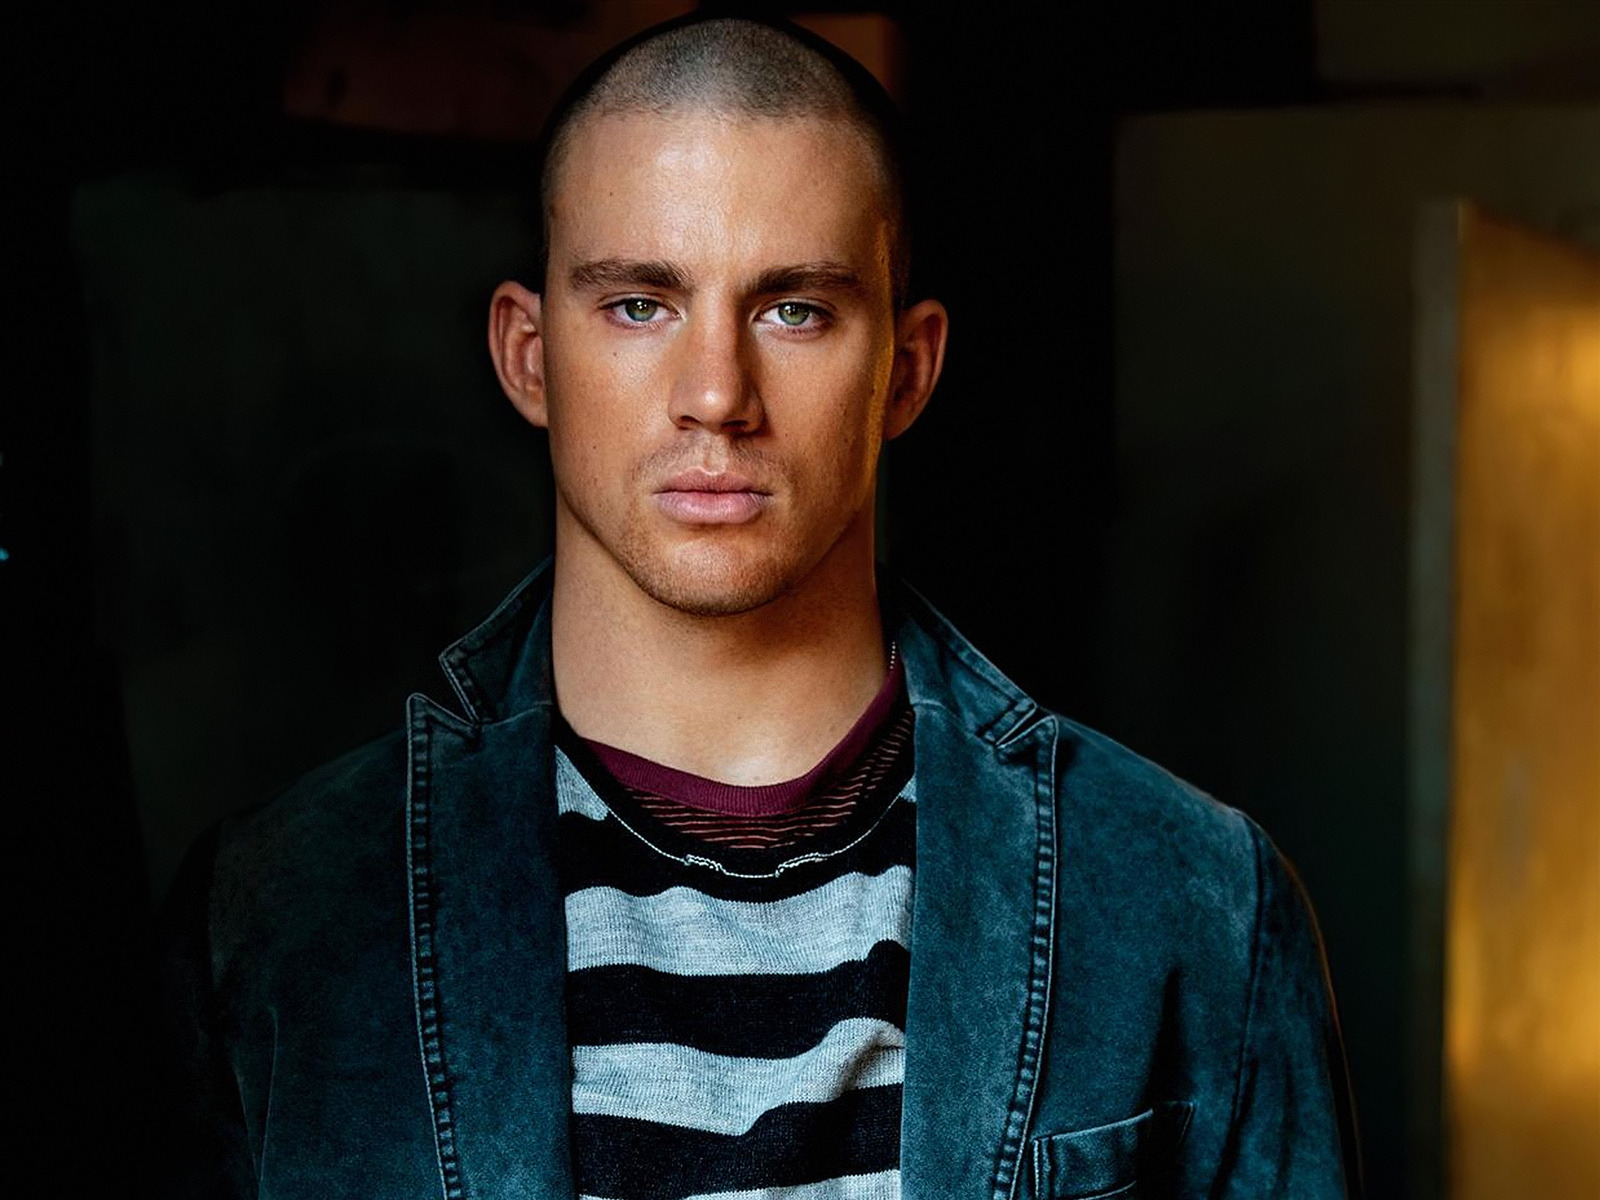 Channing Tatum Beautiful Eyes for 1600 x 1200 resolution